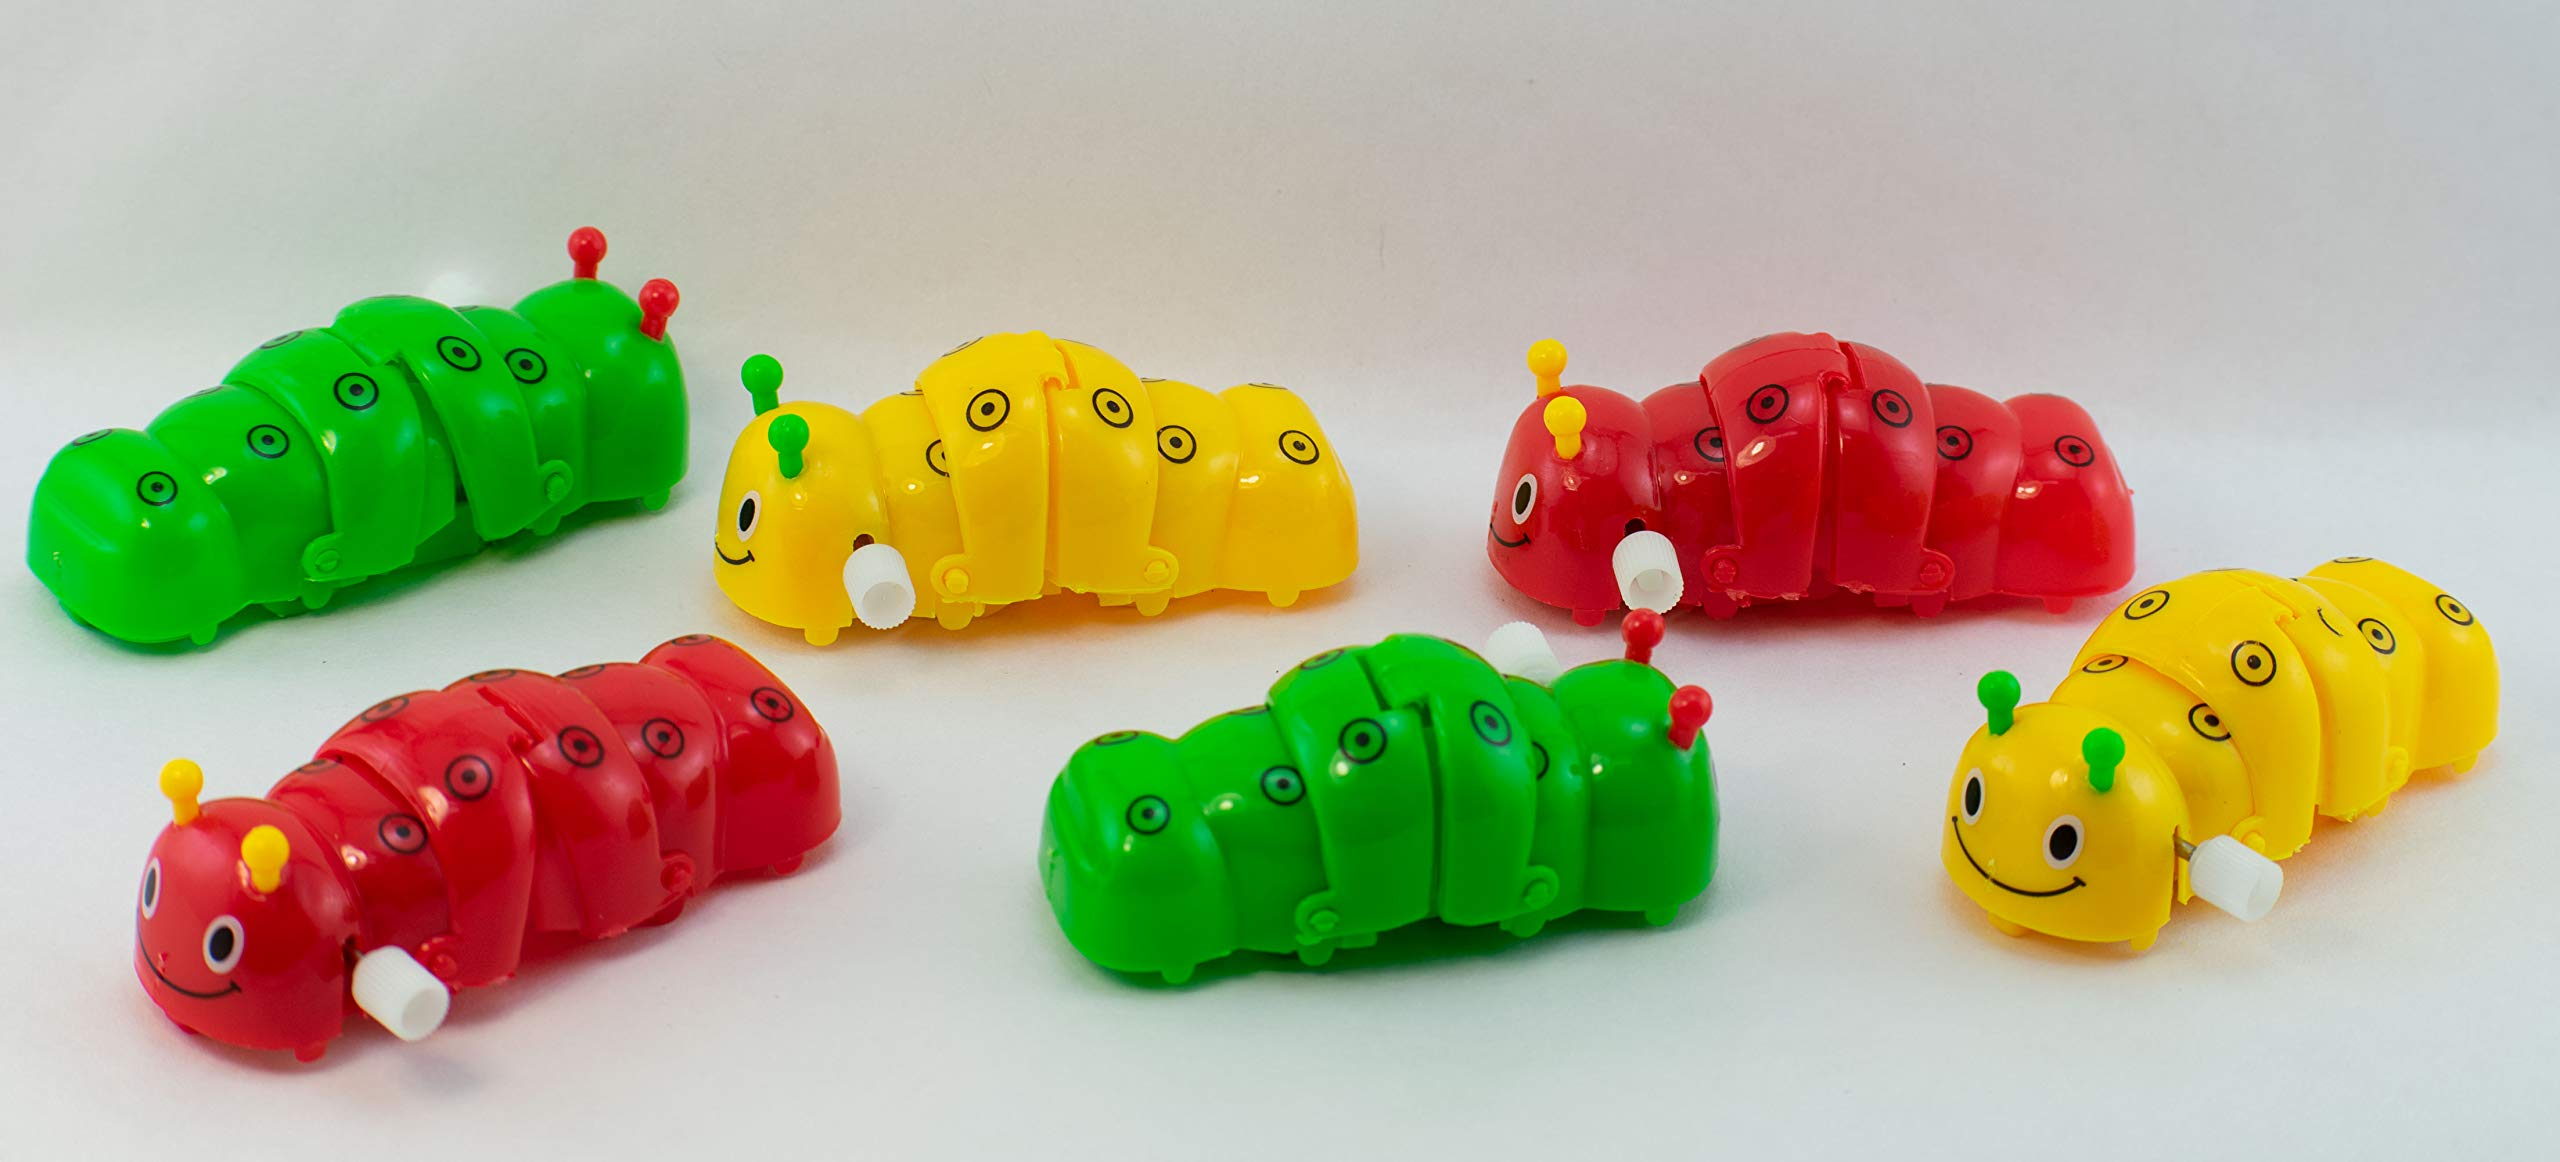 Giggle Time Wind-Up Caterpillar Assortment - (24) Pieces - Assorted Bright Colors - for Kids, Boys and Girls, Party Favors, Pinata Stuffers, Children's Gift Bags, Carnival Prizes by Giggle Time (Image #1)